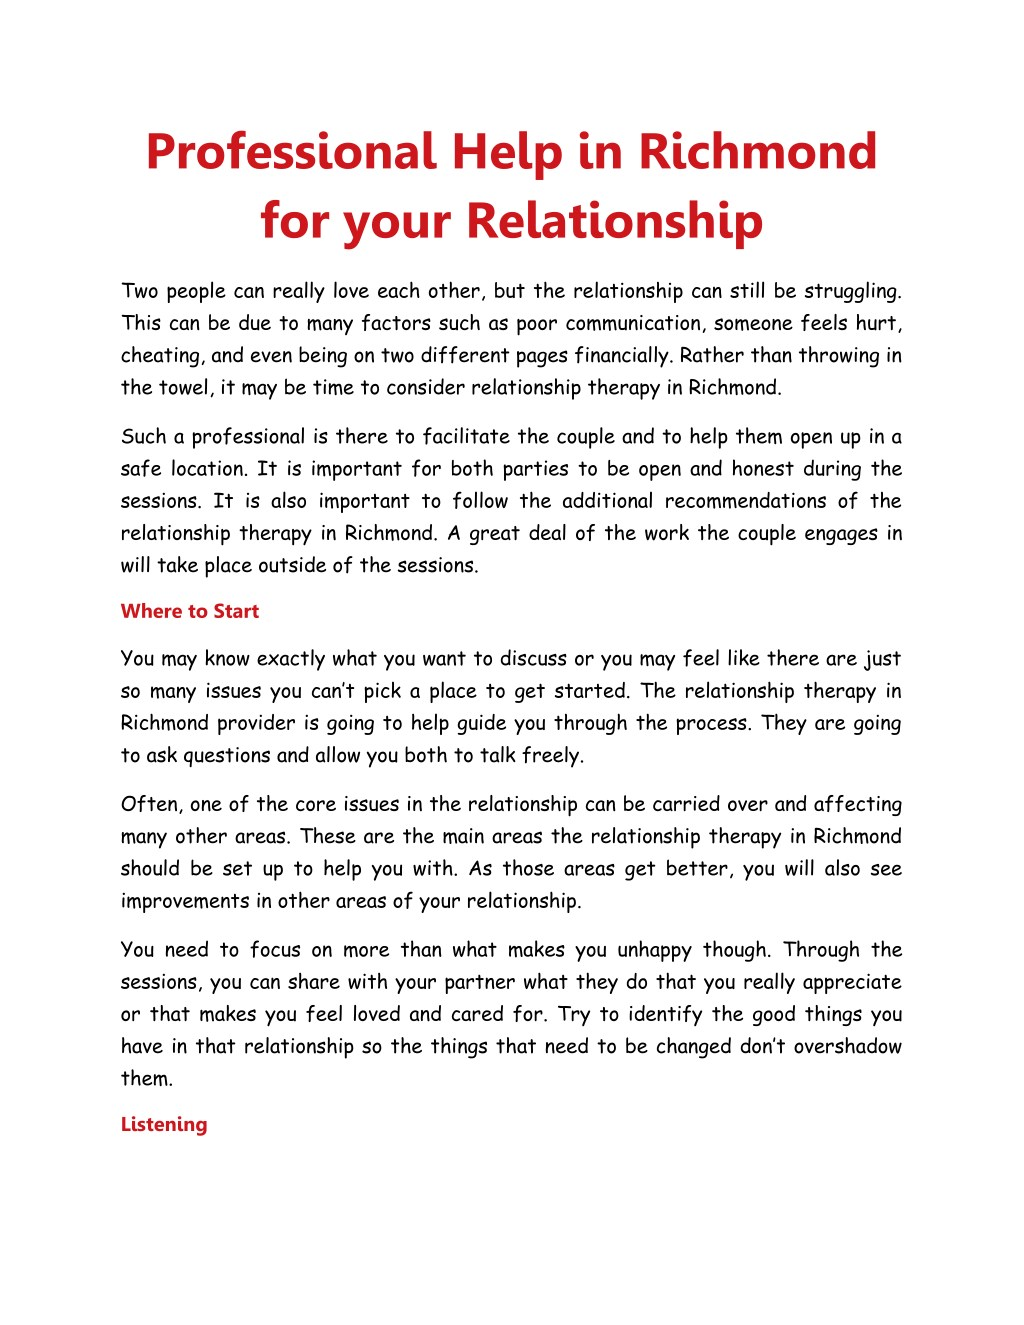 ppt professional help in richmond for your relationship powerpoint